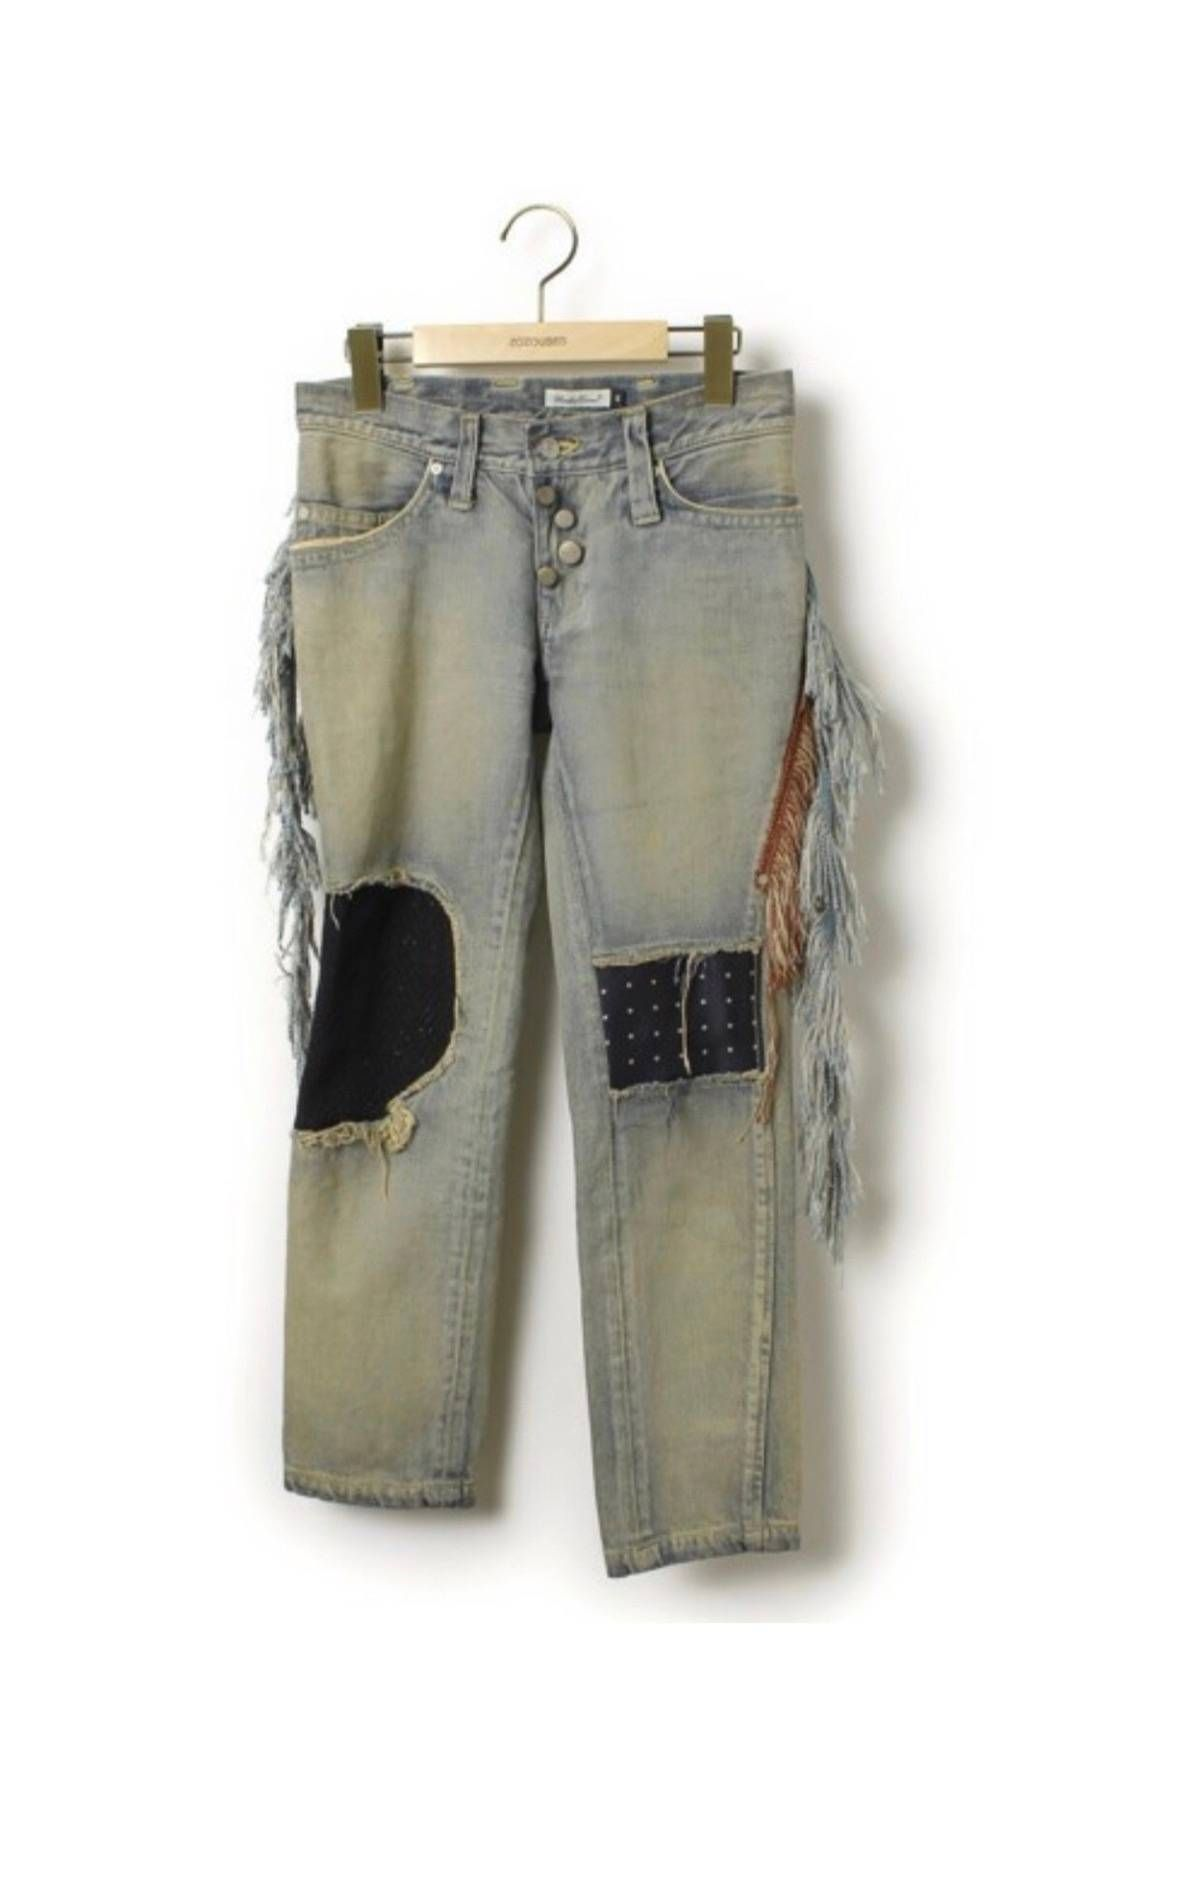 Undercover Undercover Patch Jeans Size 28 - Denim for Sale - Grailed fa83af6ef